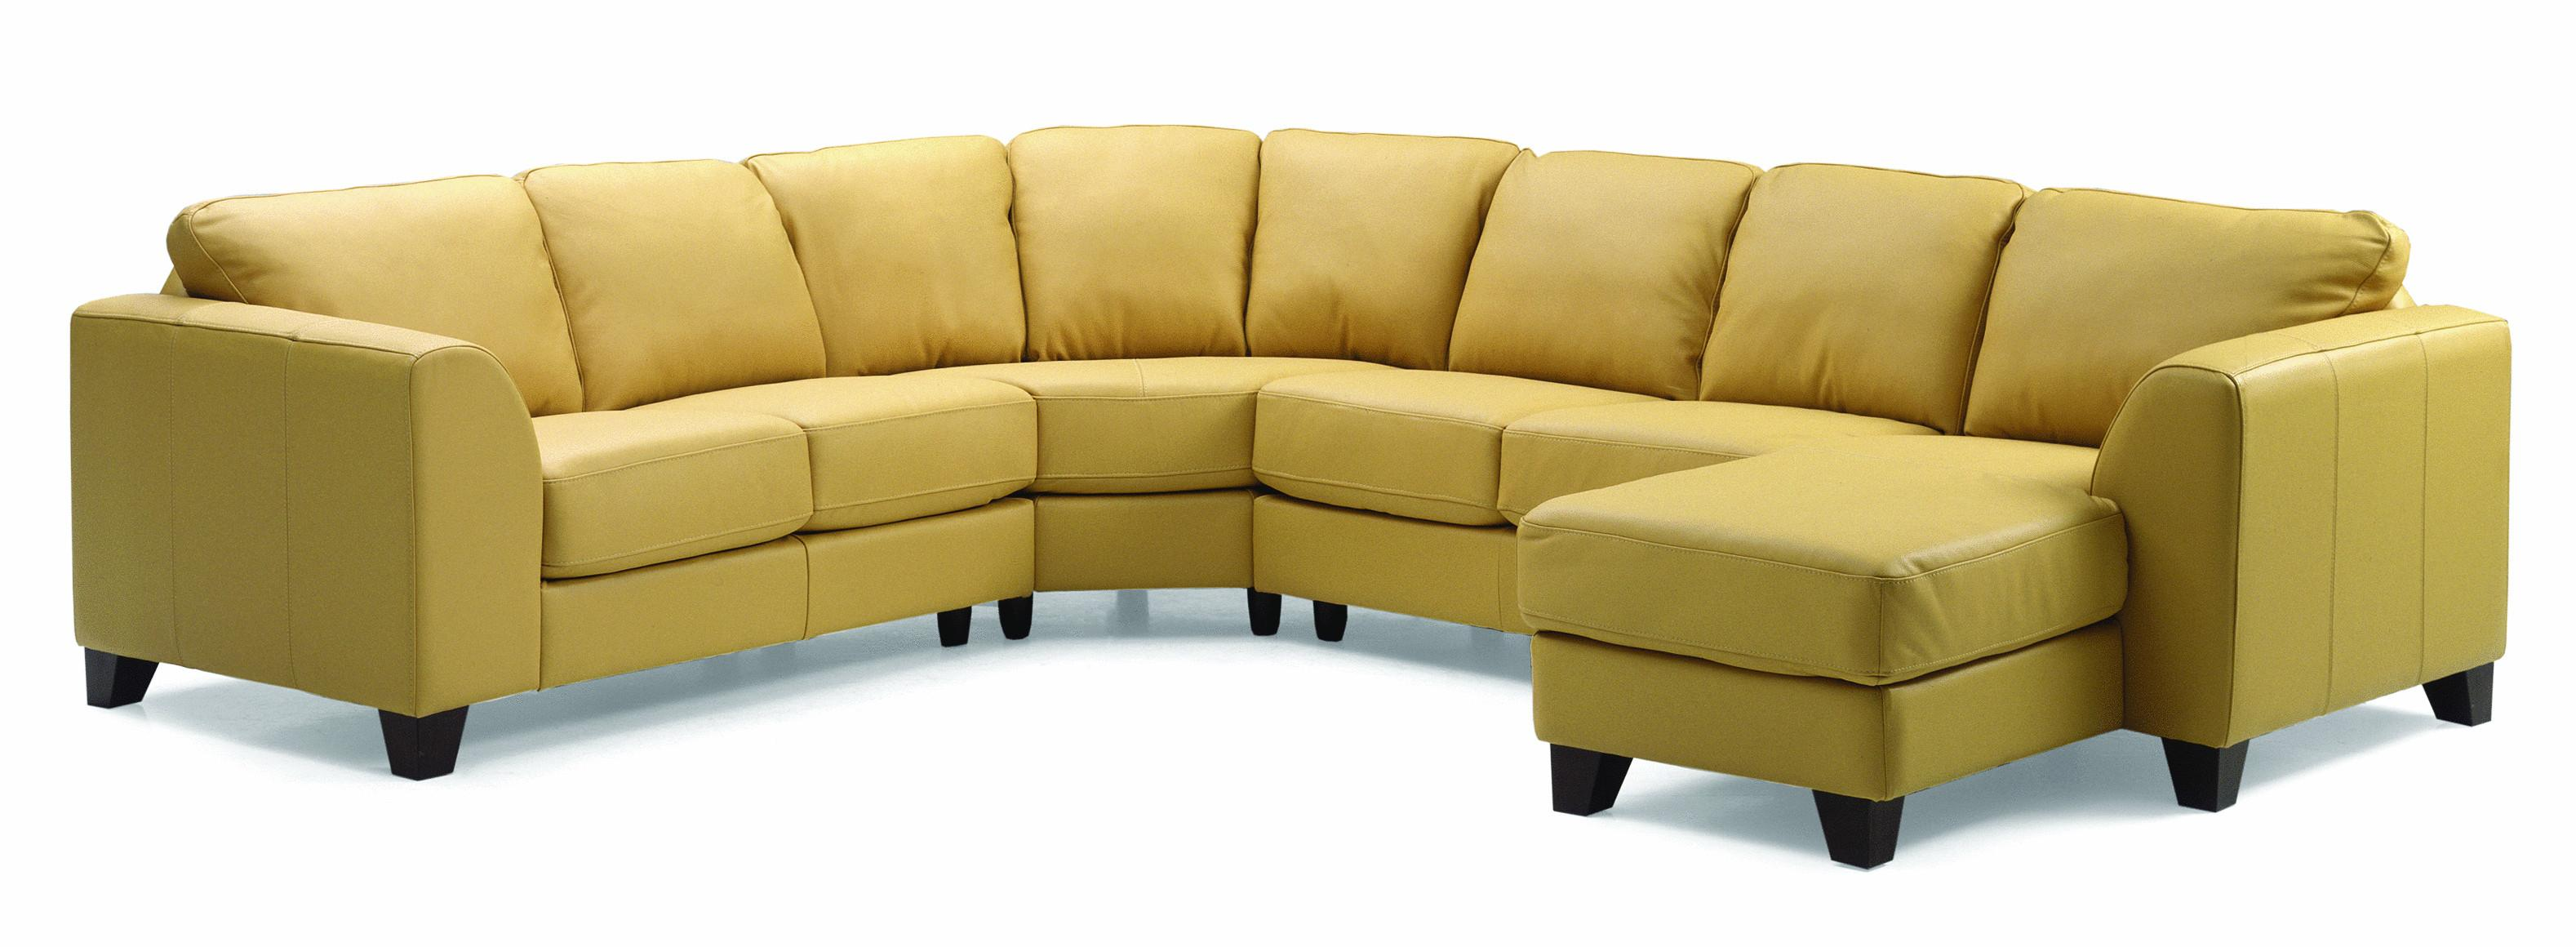 Juno Elements Chaise Sectional by Palliser at Jordan's Home Furnishings